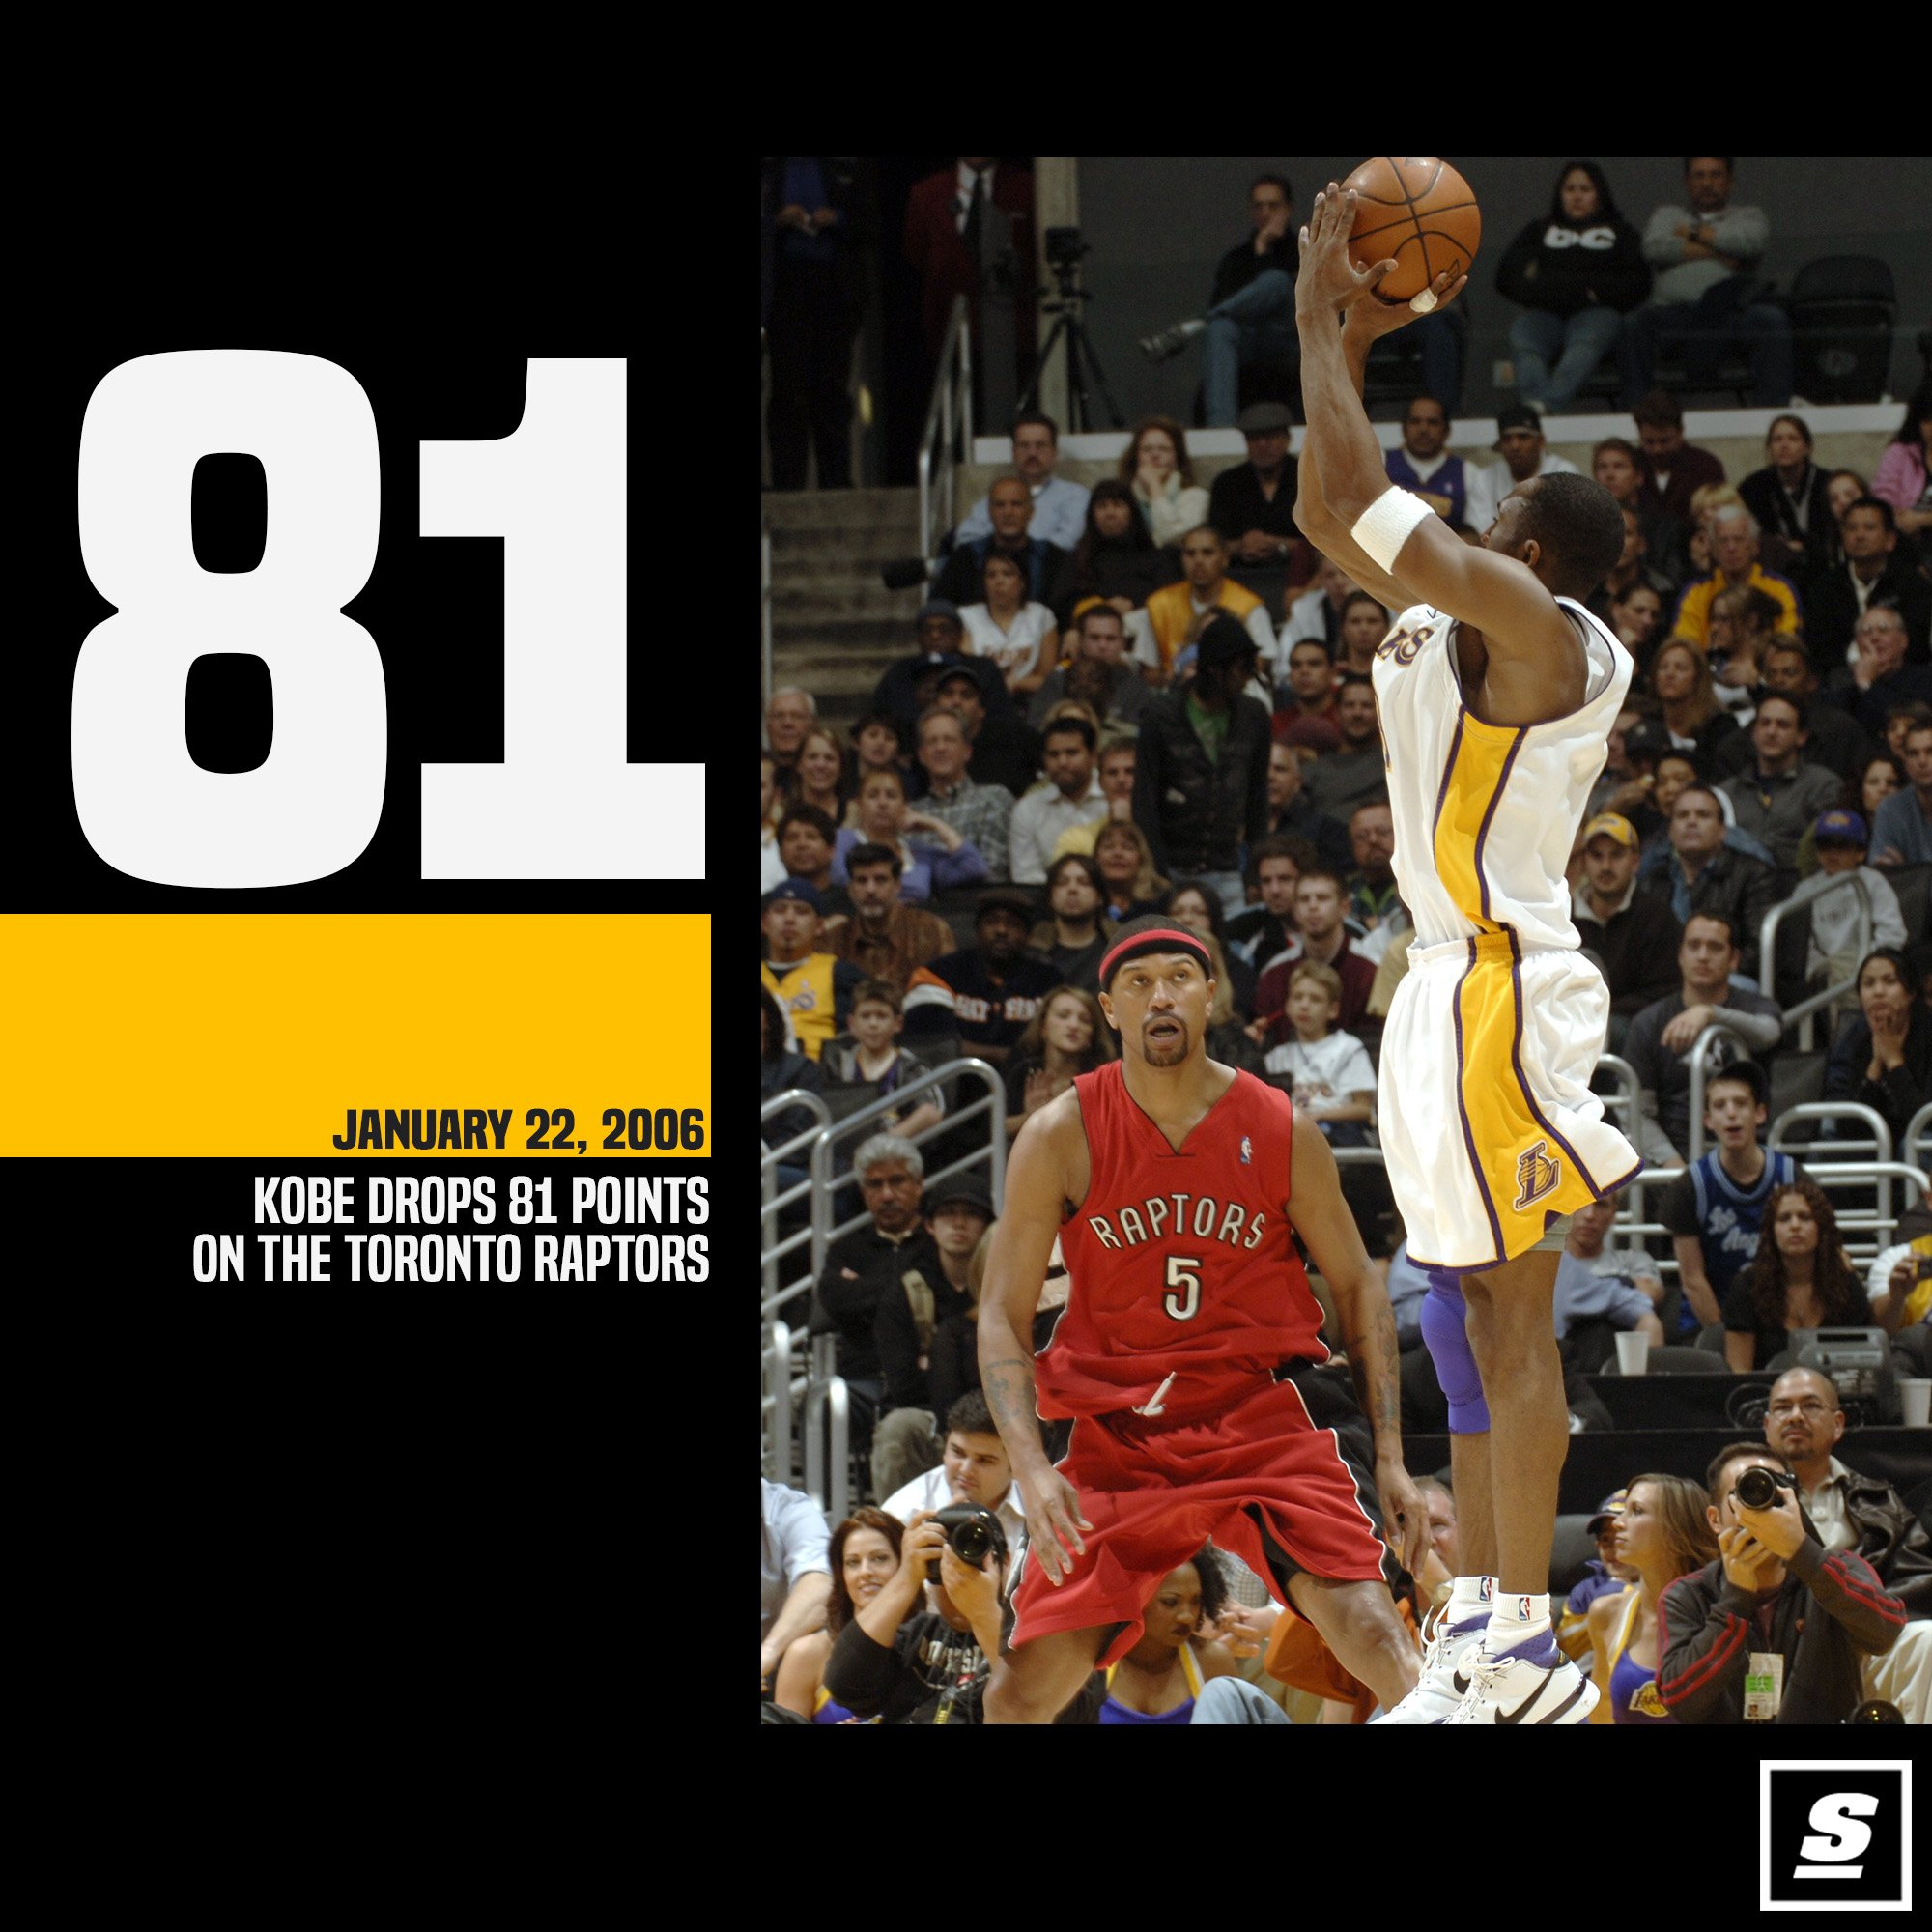 January 22, 2006.  Kobe torched the Raptors for 81 points. �� https://t.co/3fnxAT3iIa